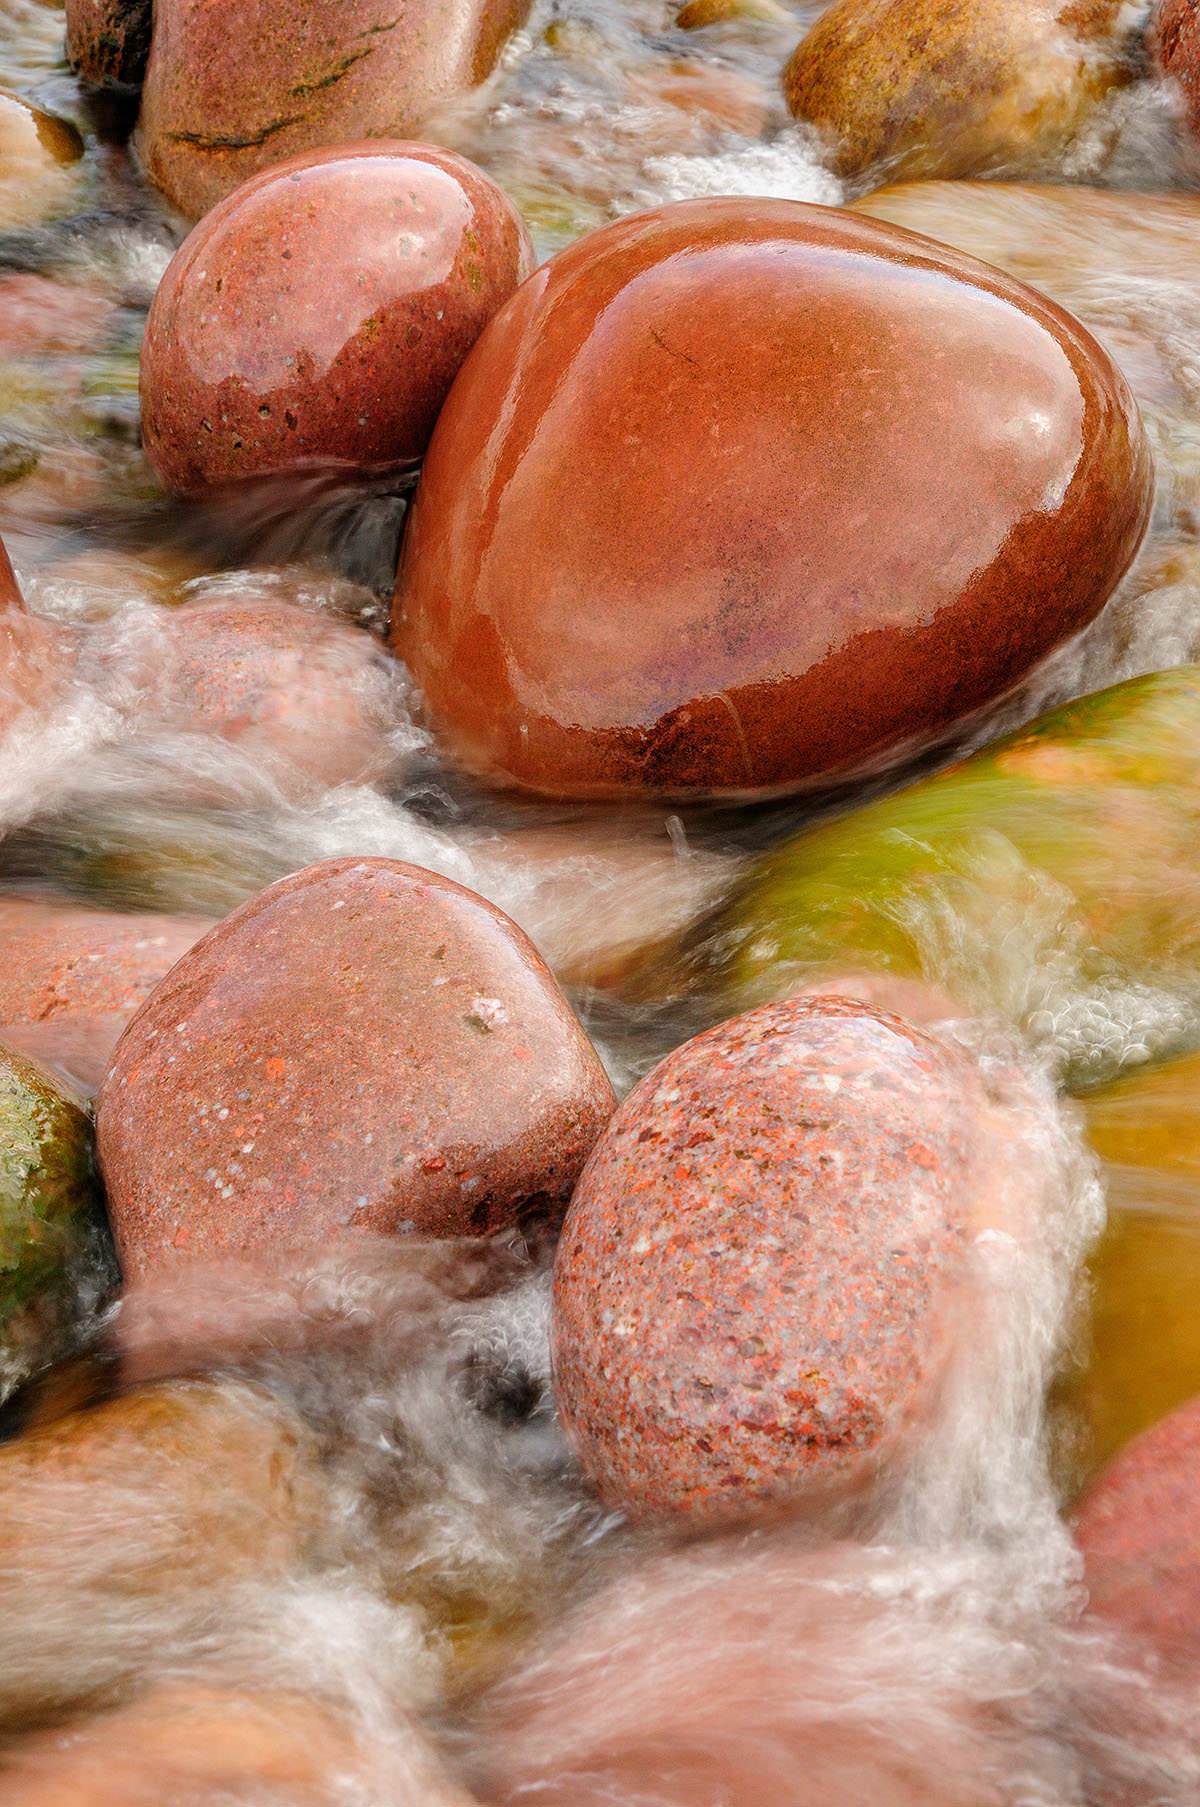 Brown and pink granite stones in a stream with water flowing over the rocks